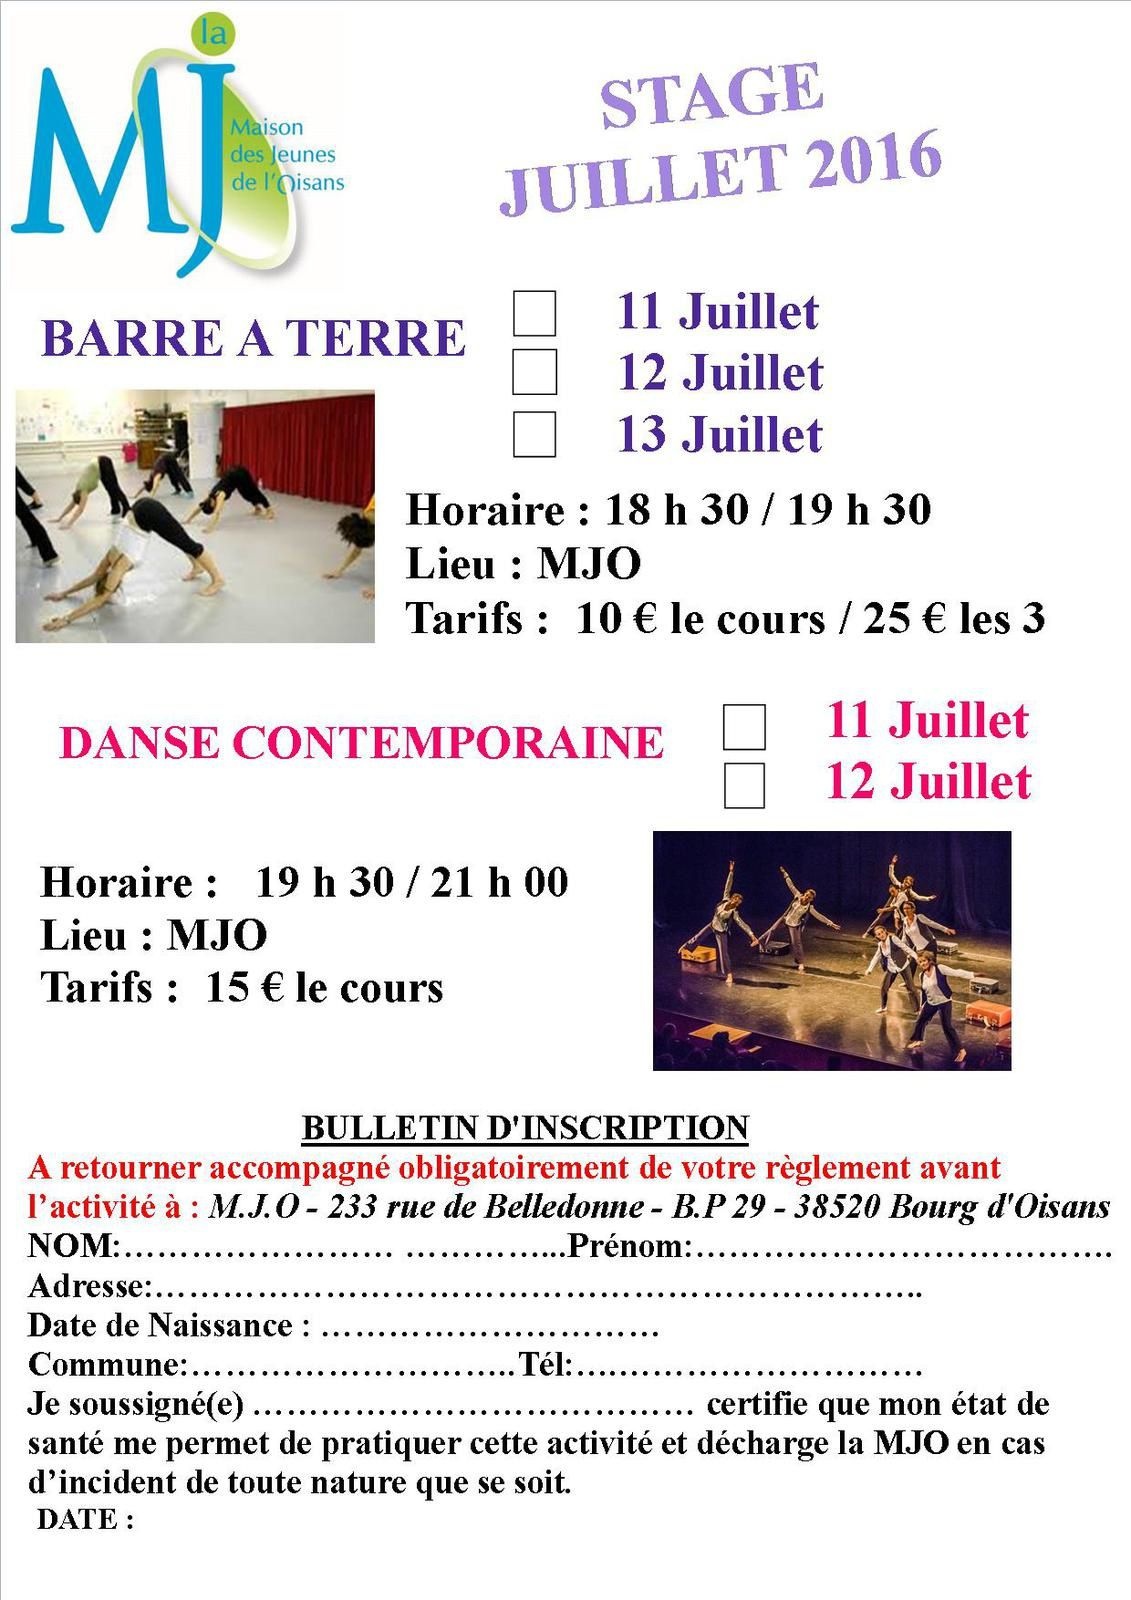 FLYER STAGE BARRE A TERRE/DANSE CONTEMPO